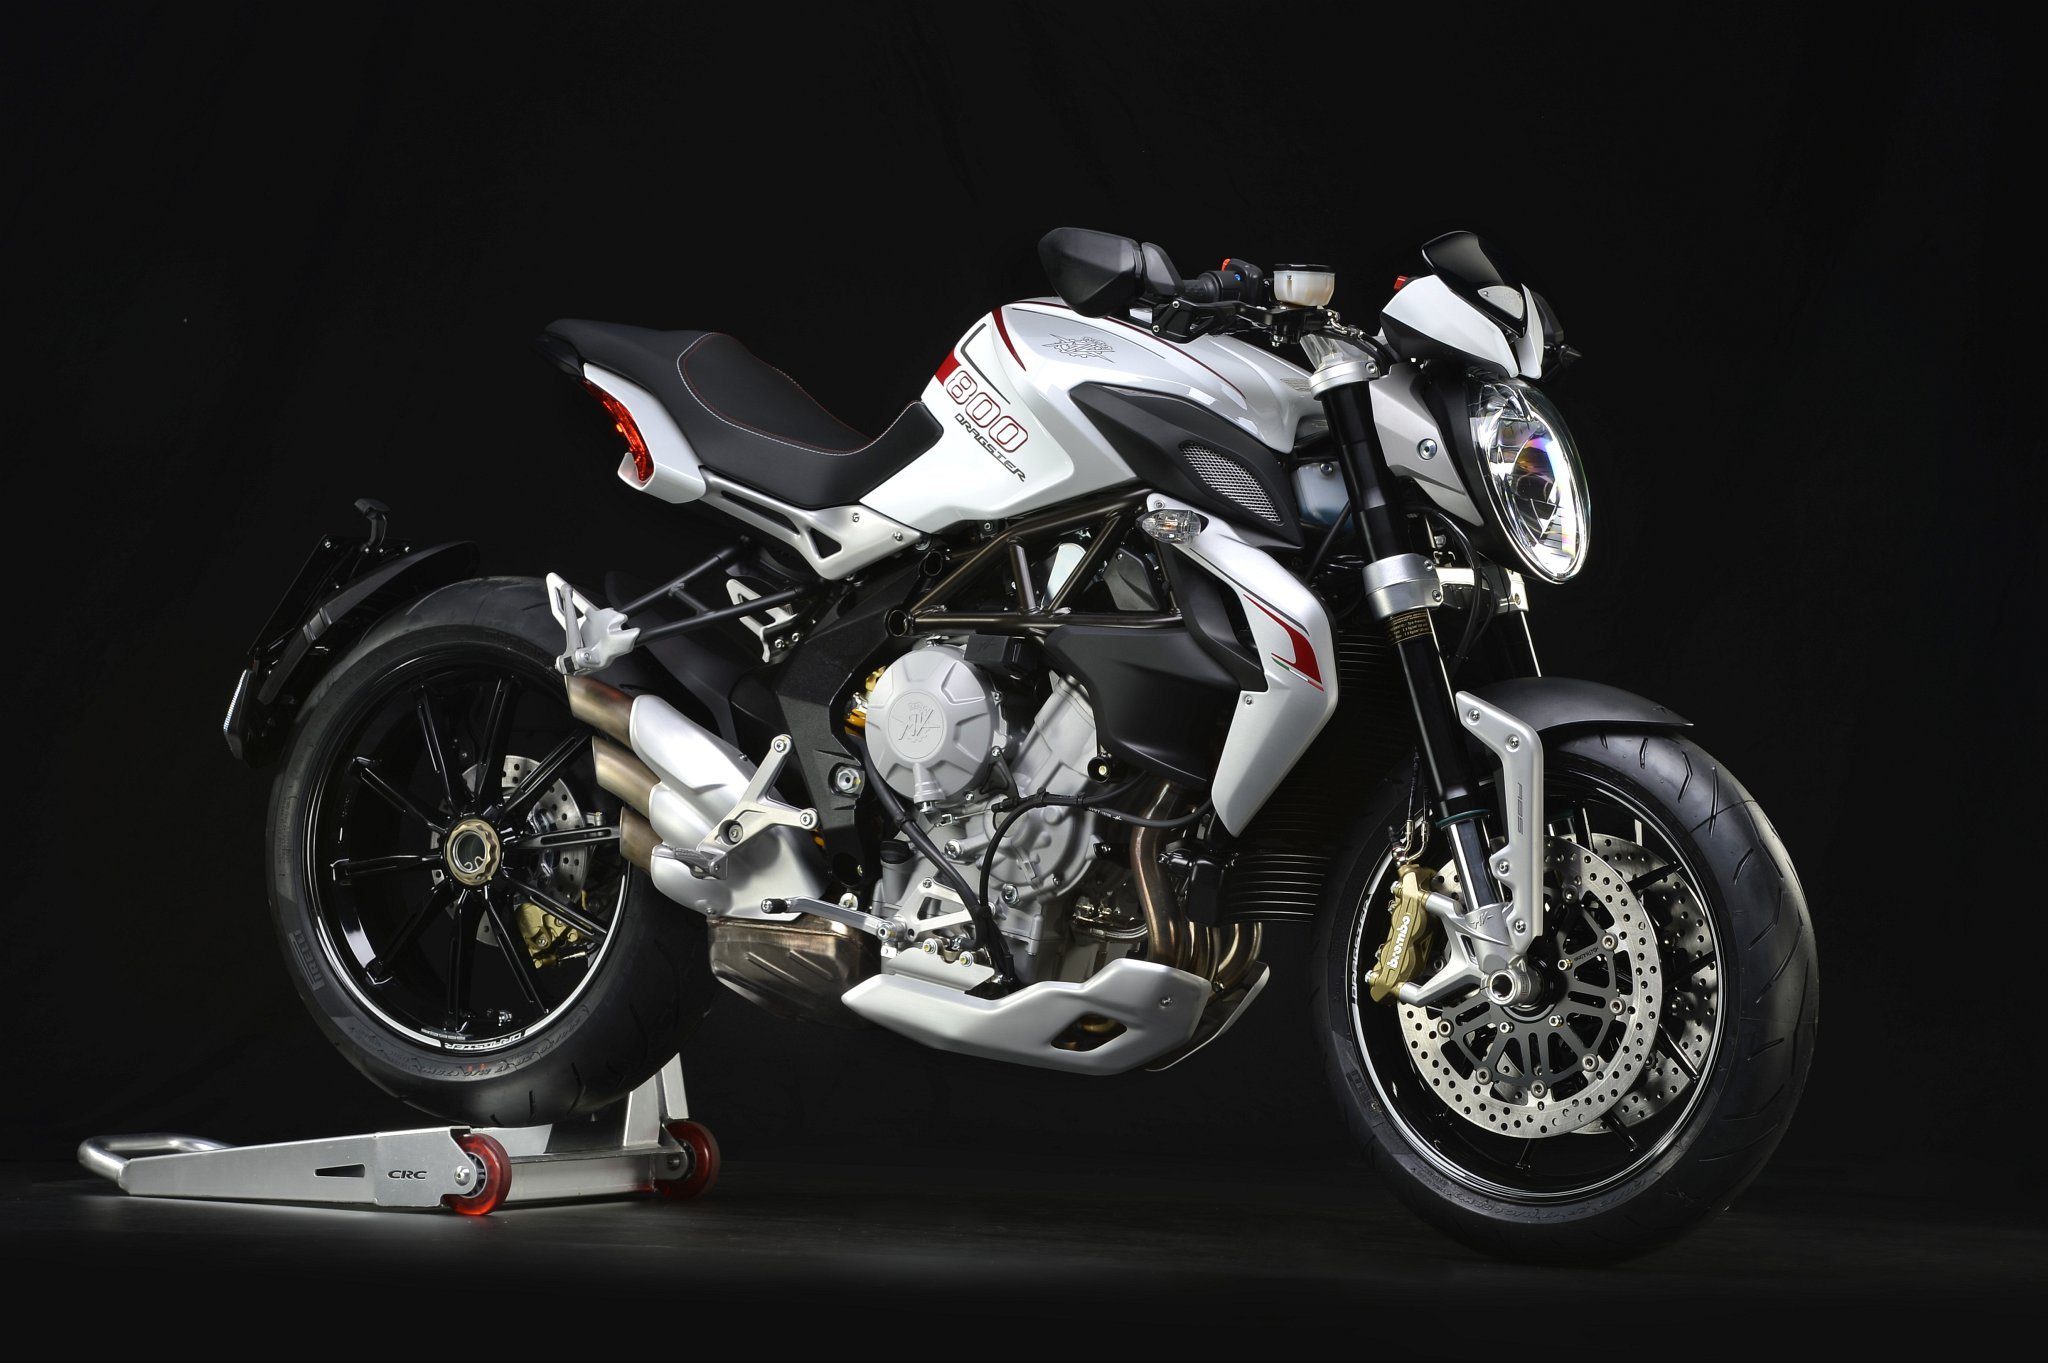 Tech Specs of the MV Agusta Brutale 800 Dragster - Asphalt & Rubber